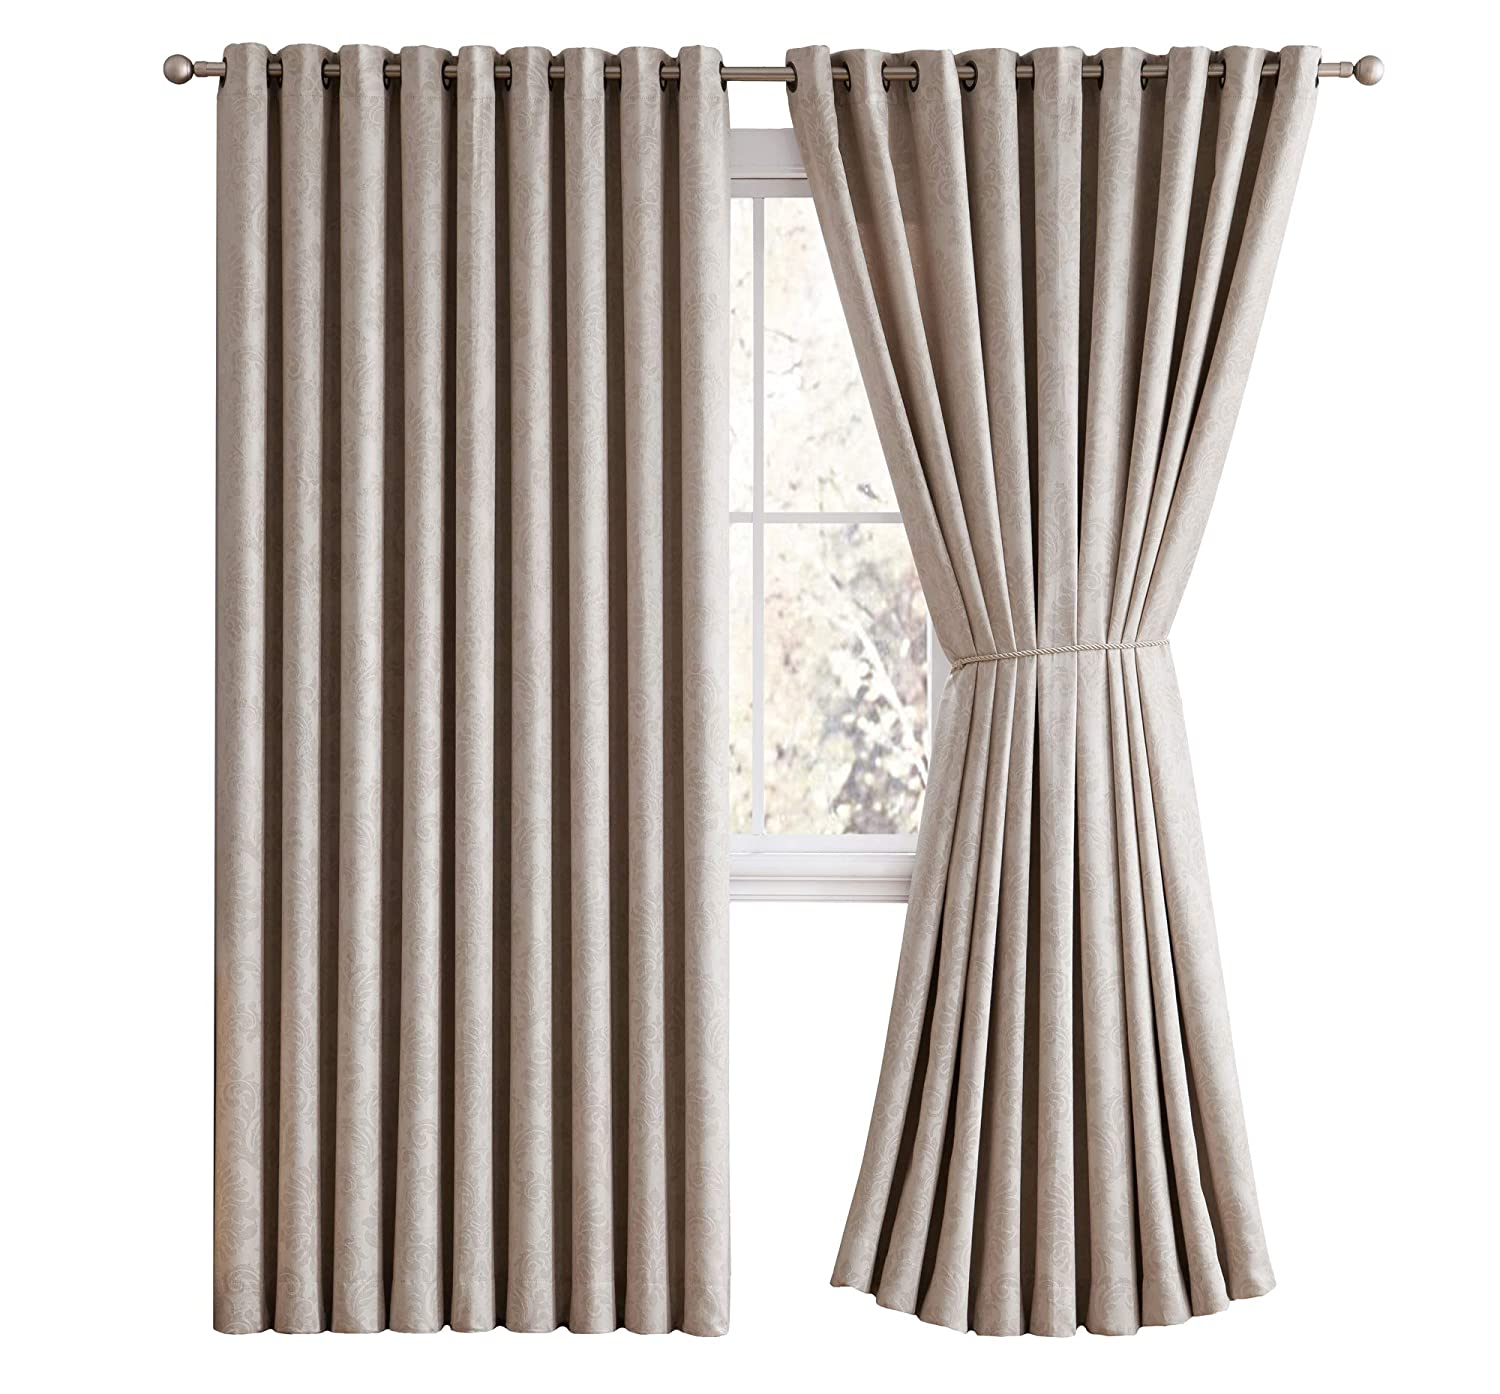 Evelyn - Embossed Thermal Weaved Blackout Curtain With 8 Grommets - Room Darkening & Noise Reduction Fabric - Blocks up to 97% of Sunlight - Premium Draperies (1 panel 54W x 63L, Light Gray) LinenZone